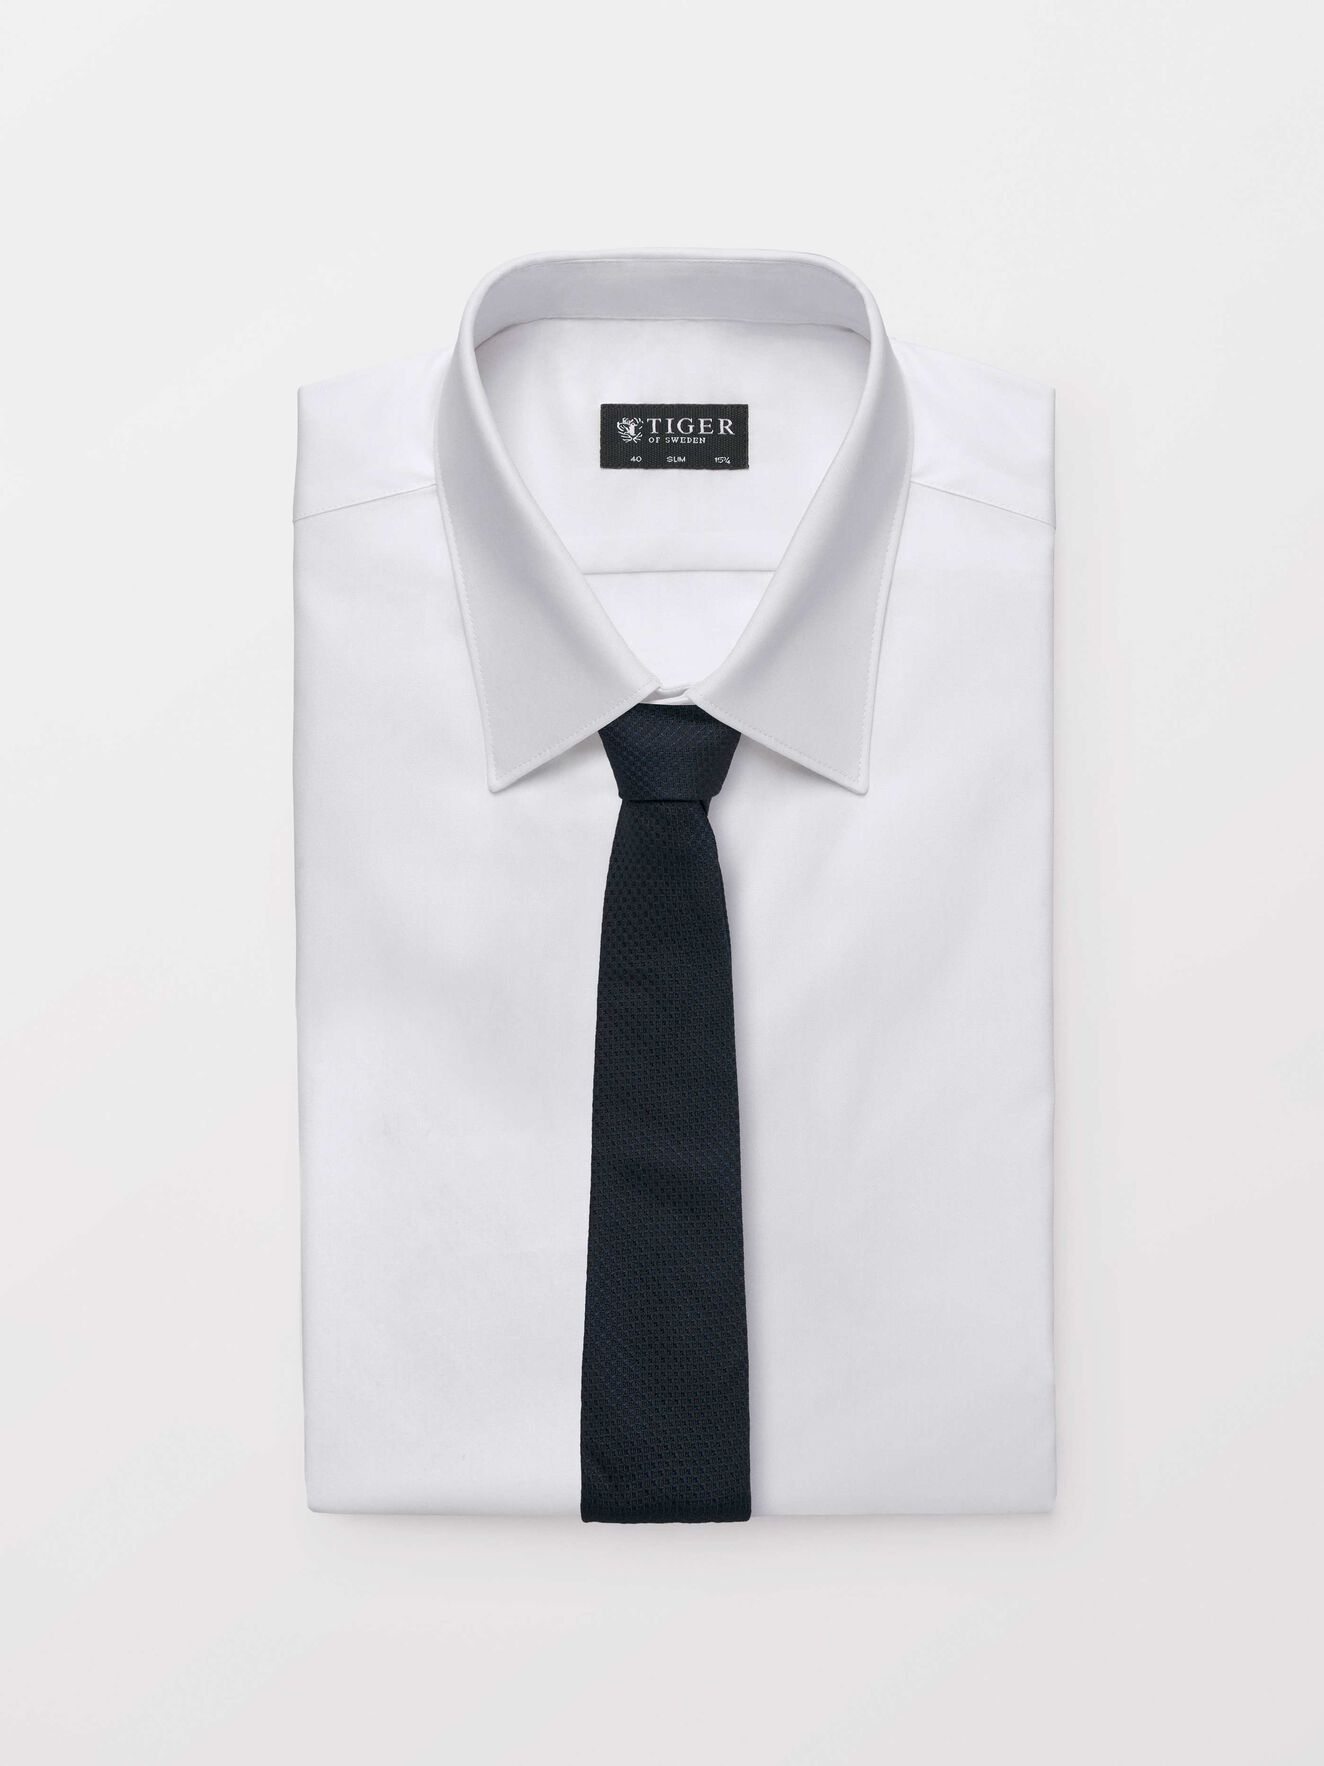 Them Tie in Light Ink from Tiger of Sweden